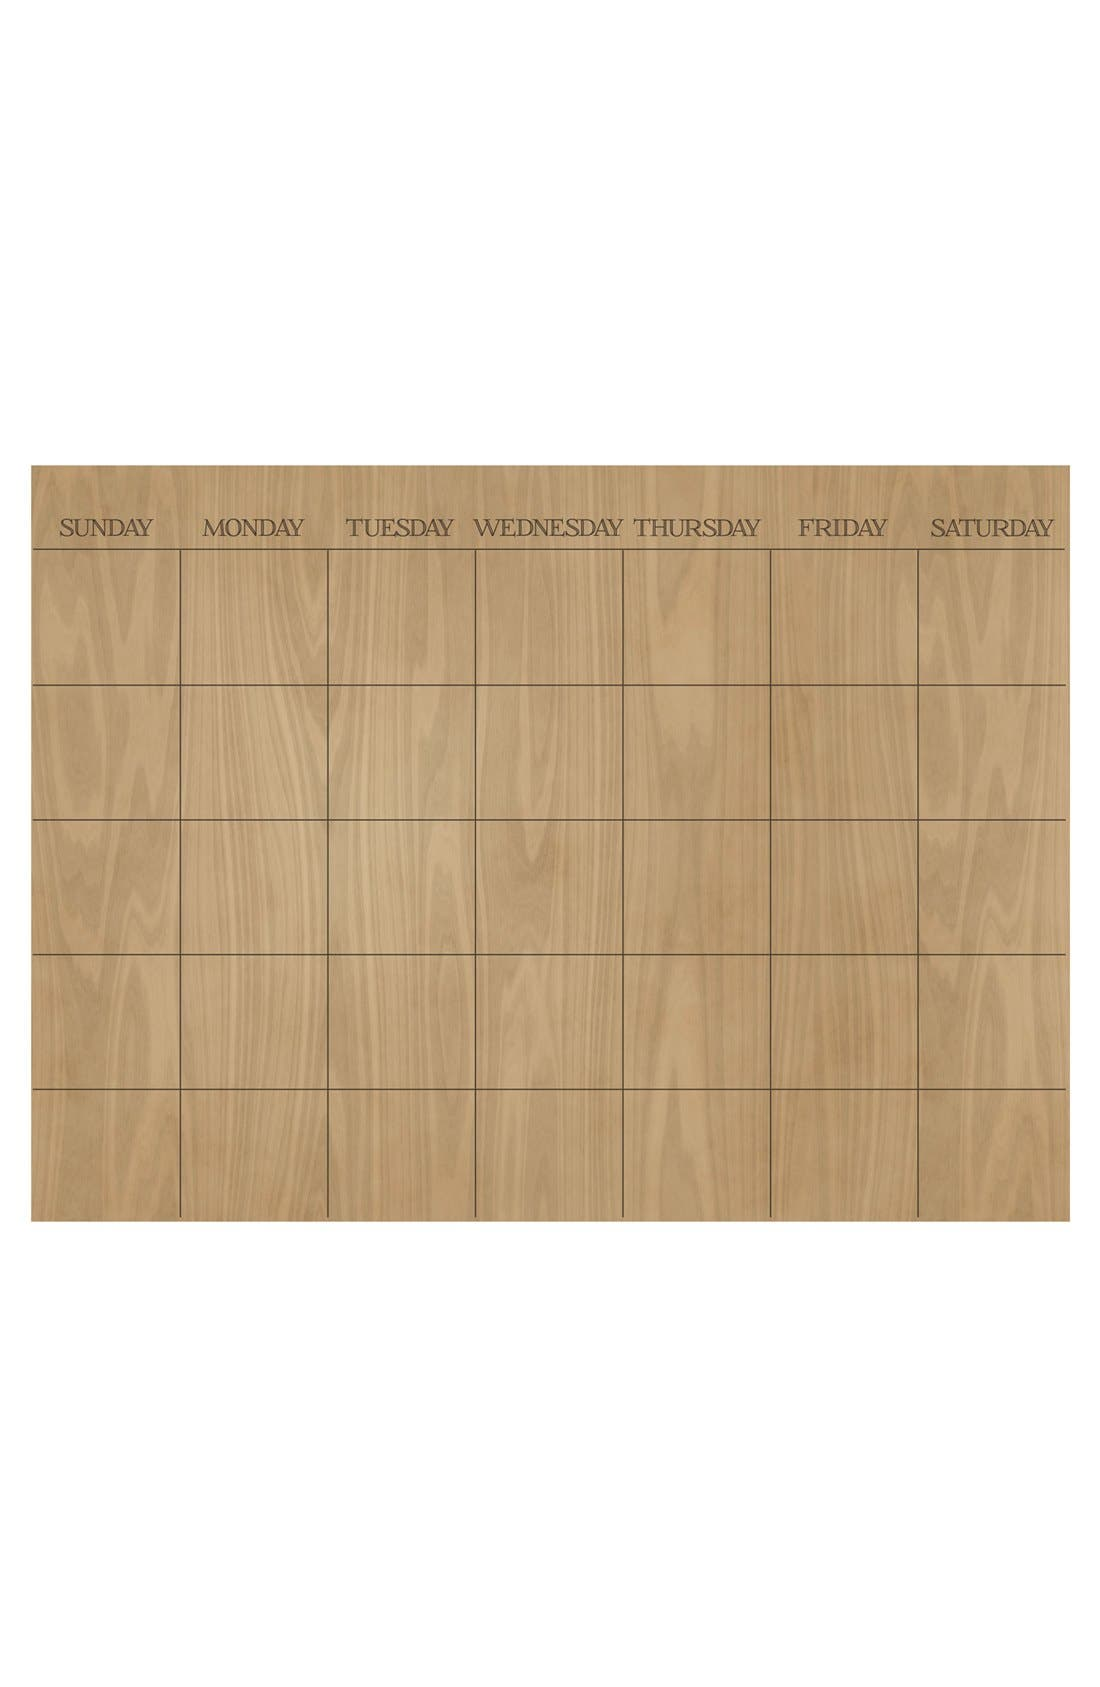 'Hardwood' Monthly Dry Erase Calendar,                             Main thumbnail 1, color,                             Brown